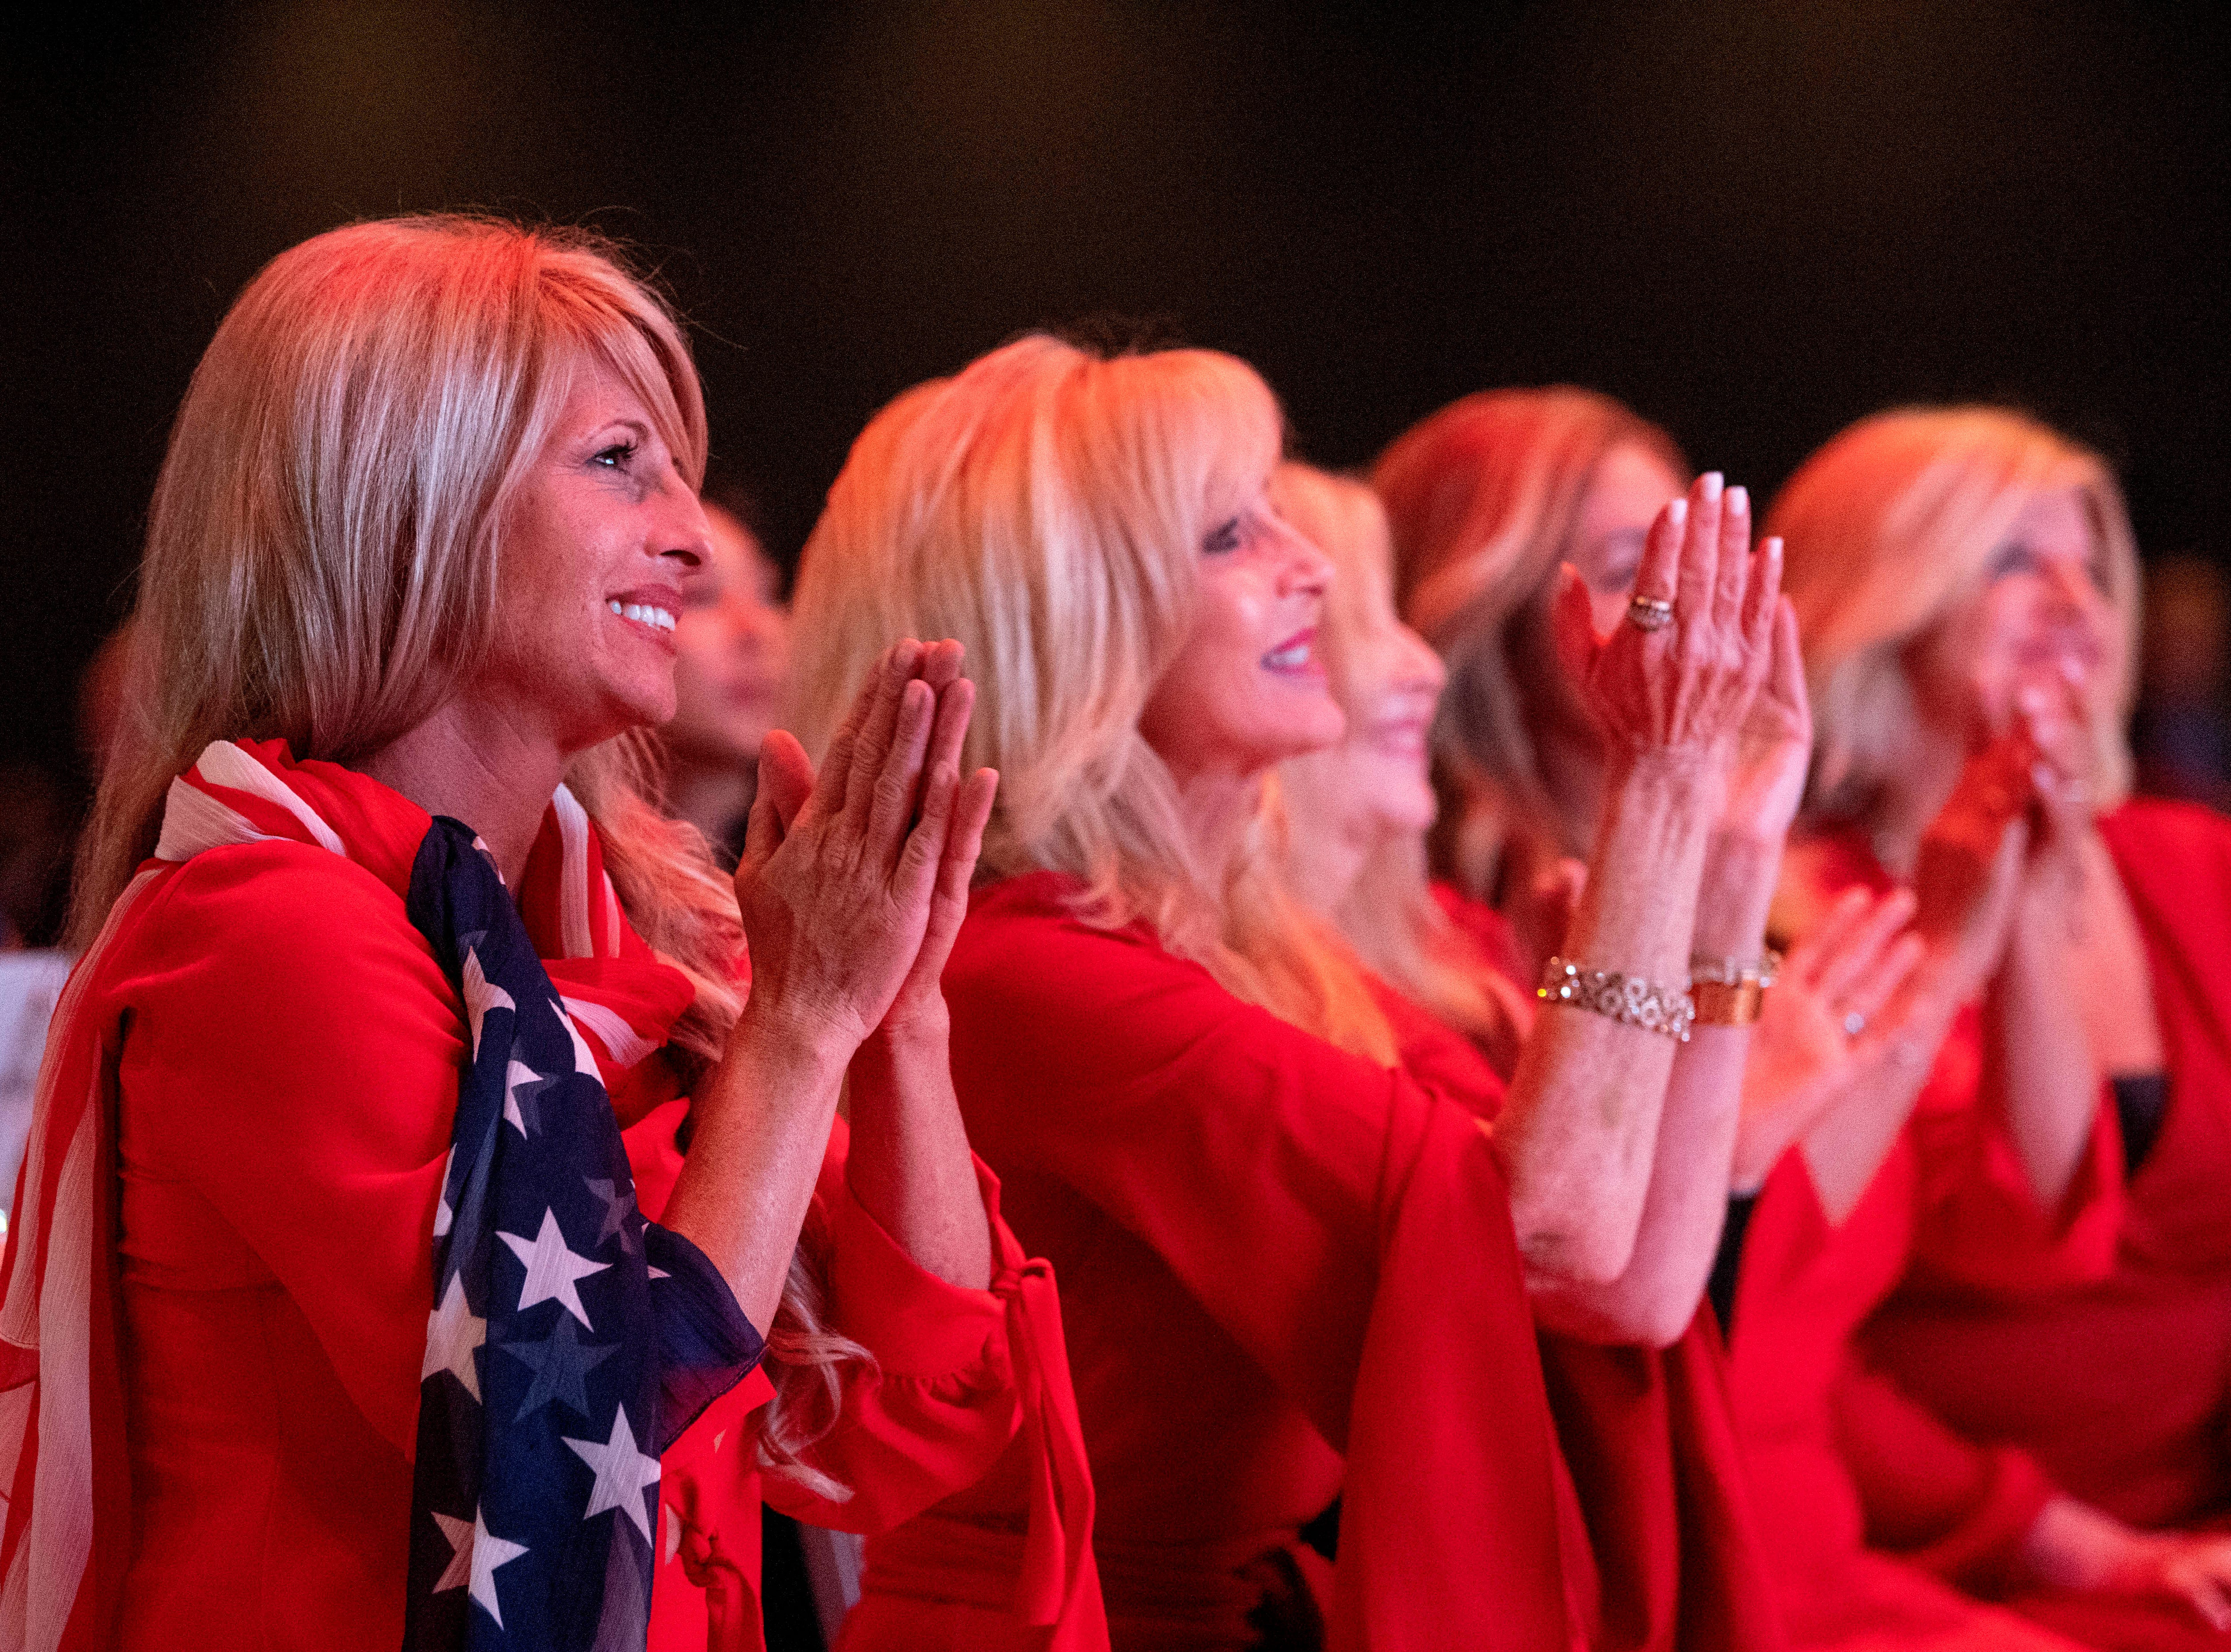 Rebecca Crabb, left, of the Trumpettes of America celebrates as incumbent U.S. Sen. Ted Cruz, R-Texas, is announced as the winner over challenger Rep. Beto O'Rourke during the Dallas County Republican Party election night watch party on Tuesday, Nov. 6, 2018 at The Statler Hotel in Dallas. (AP Photo/Jeffrey McWhorter)